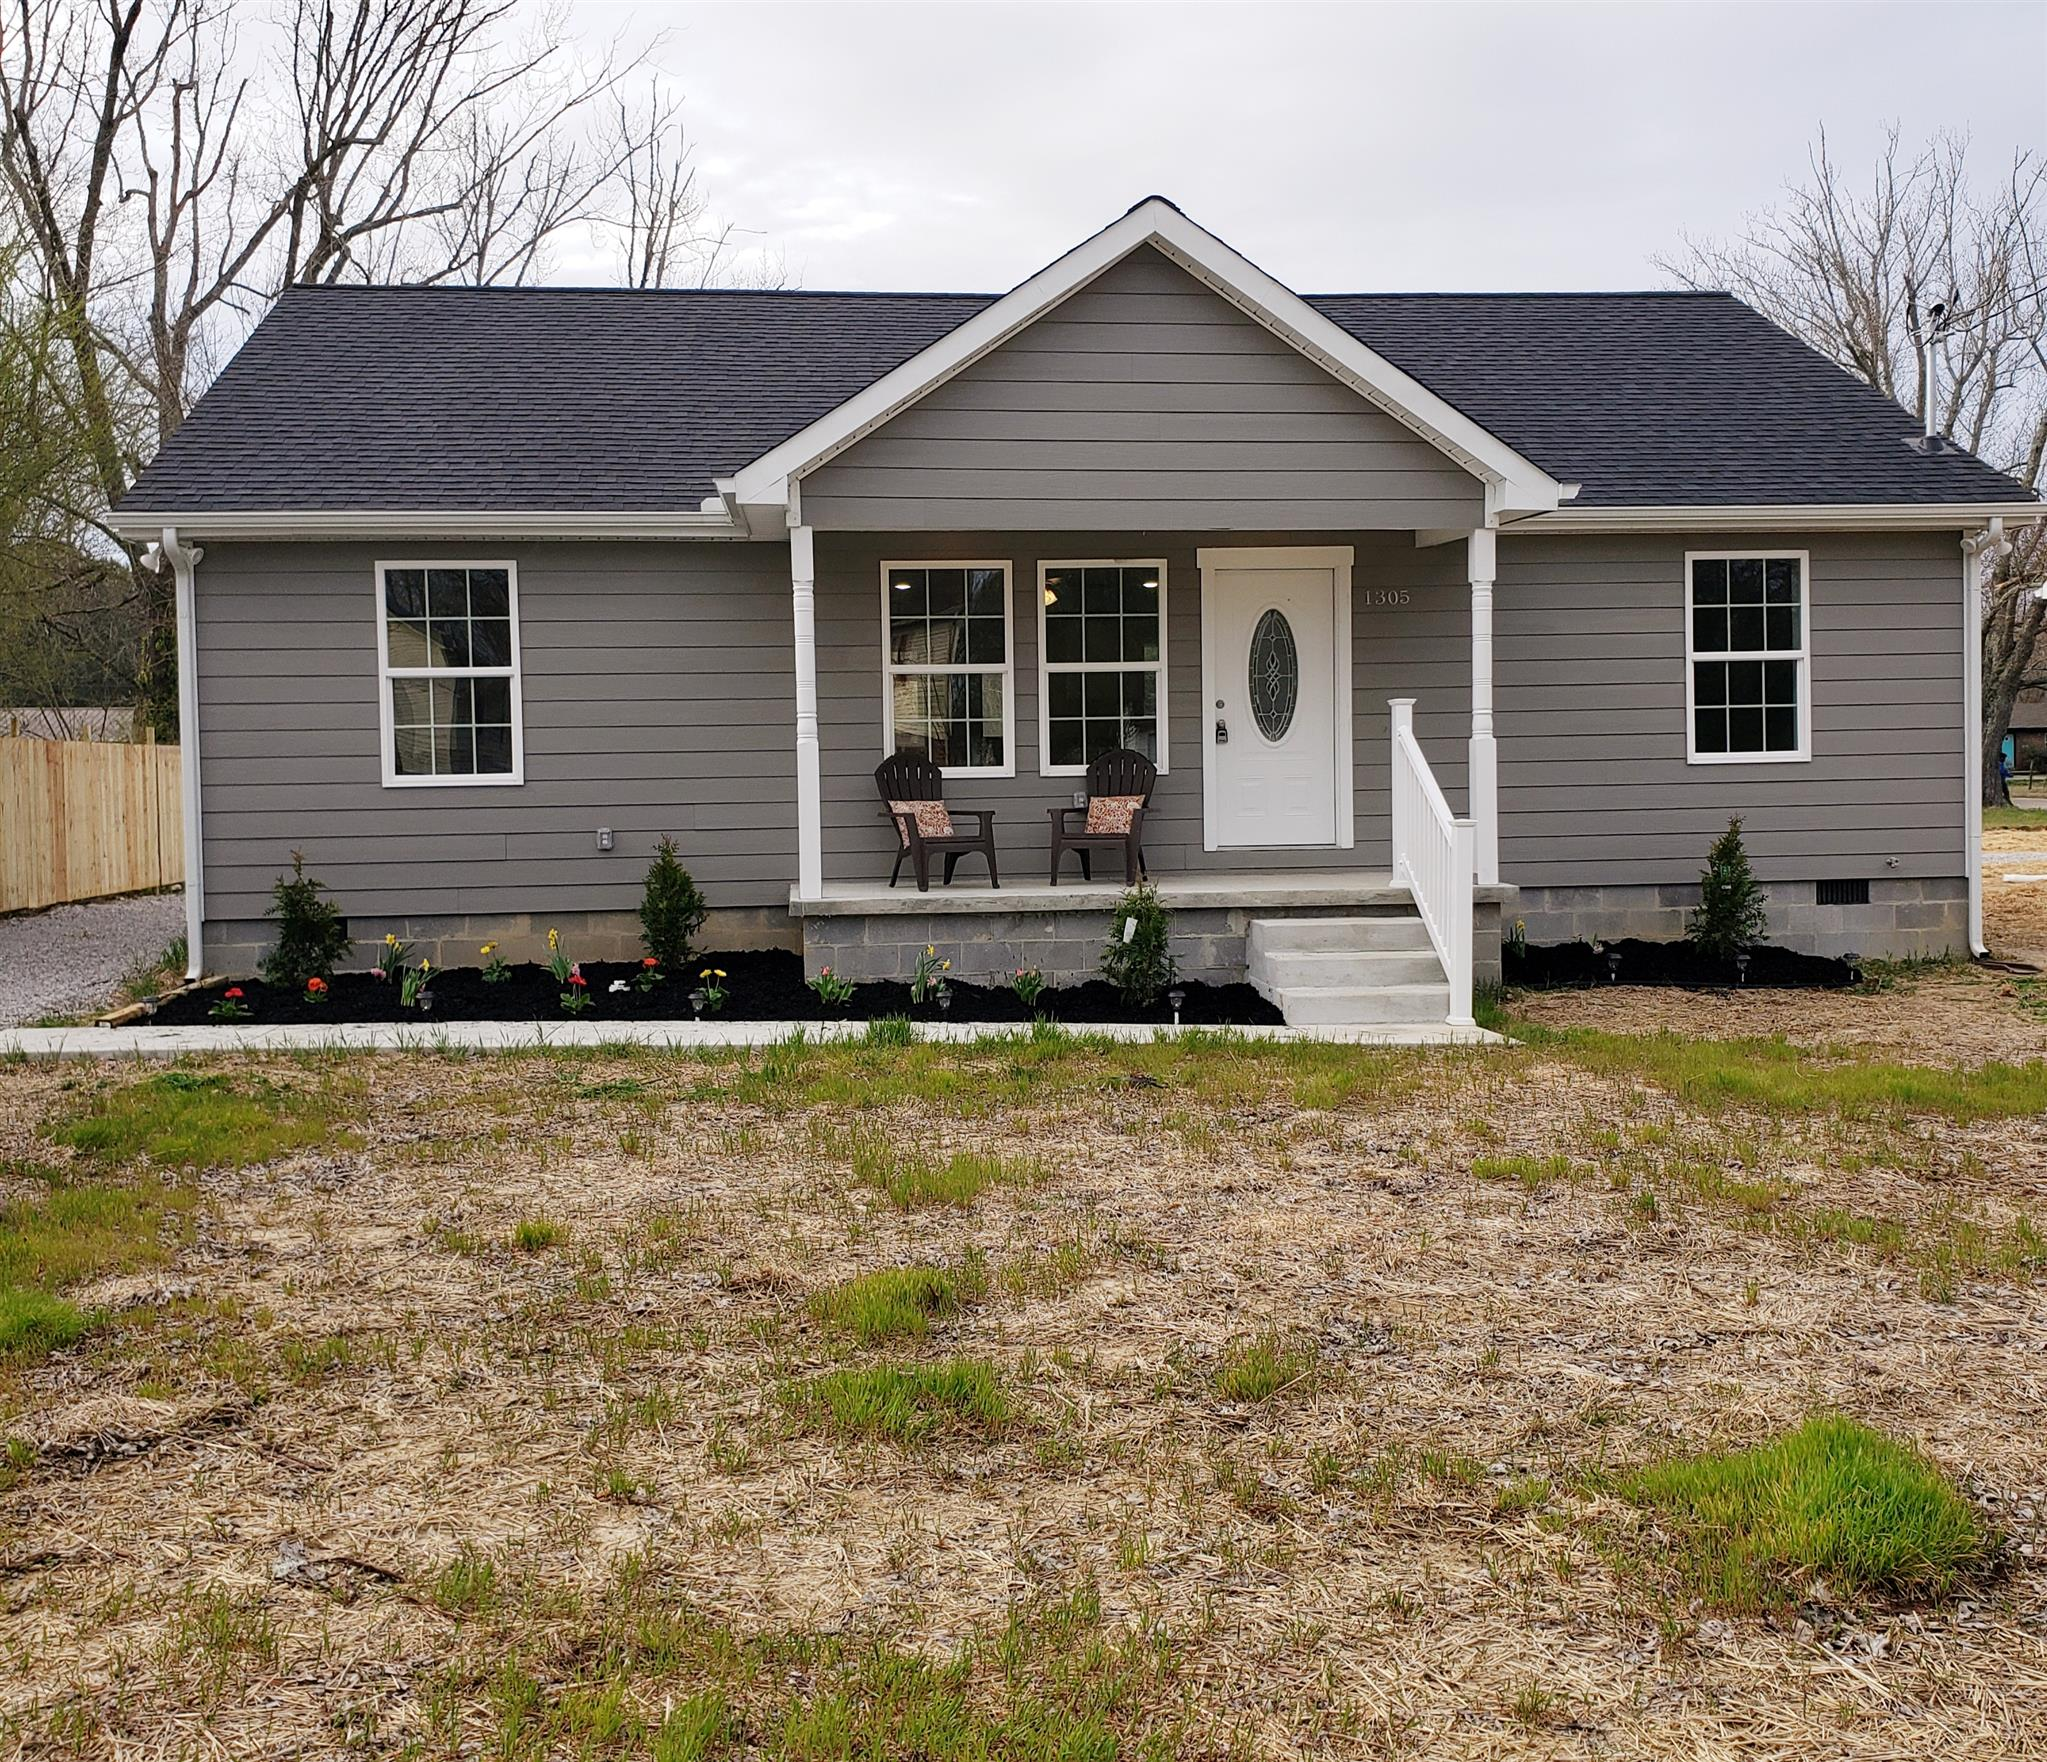 1305 Lincoln St, E, Tullahoma, Tennessee